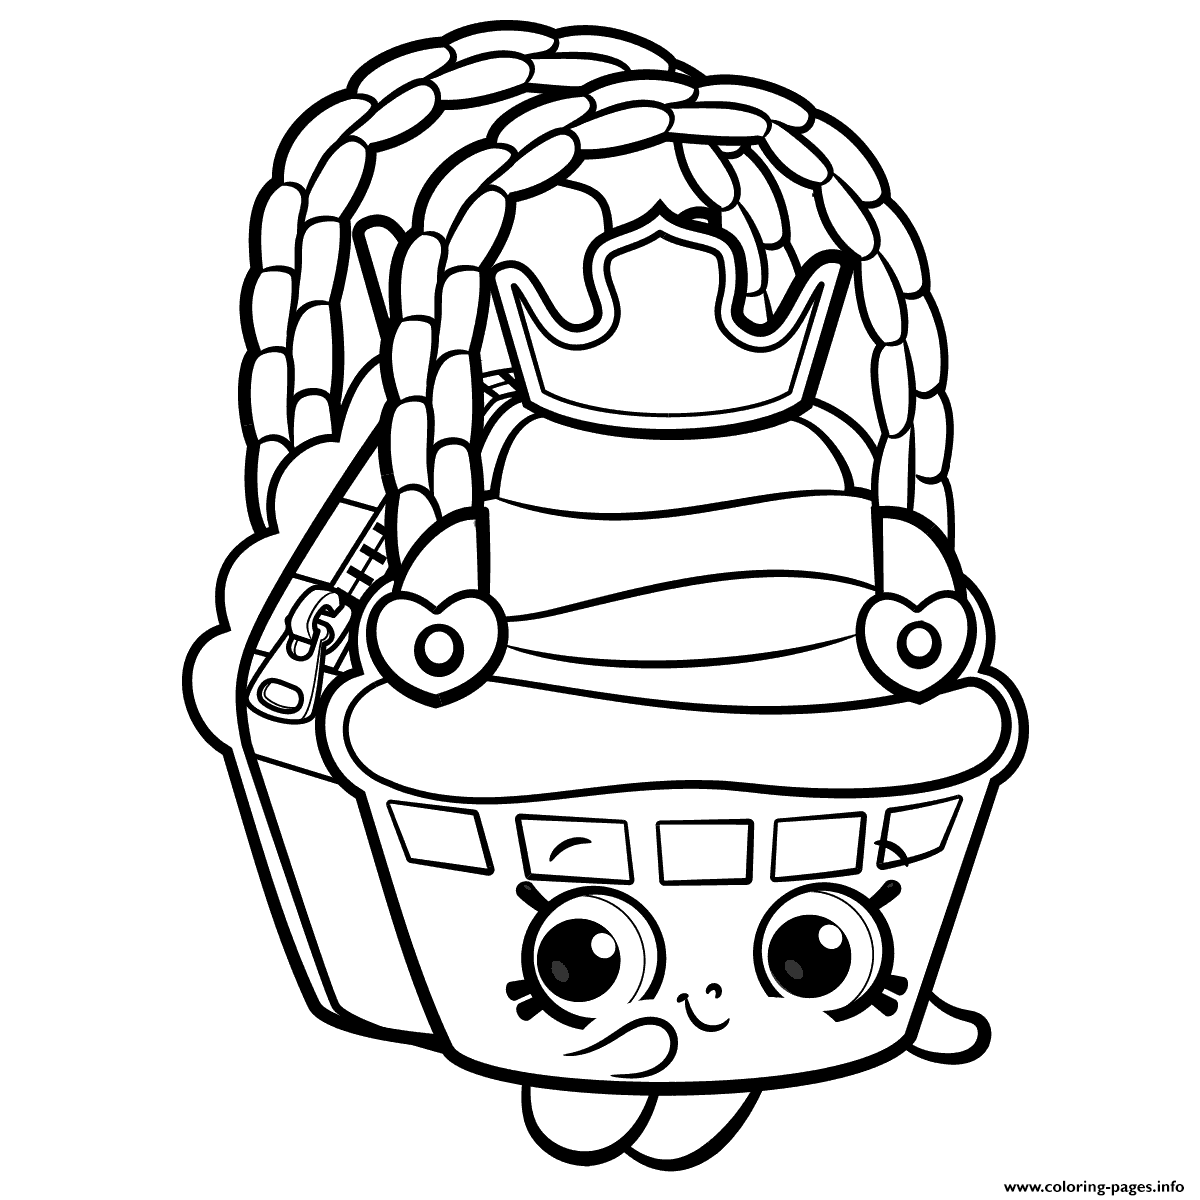 Shopkins coloring pages wishes - Cute Shopkins Season 8 Coloring Pages